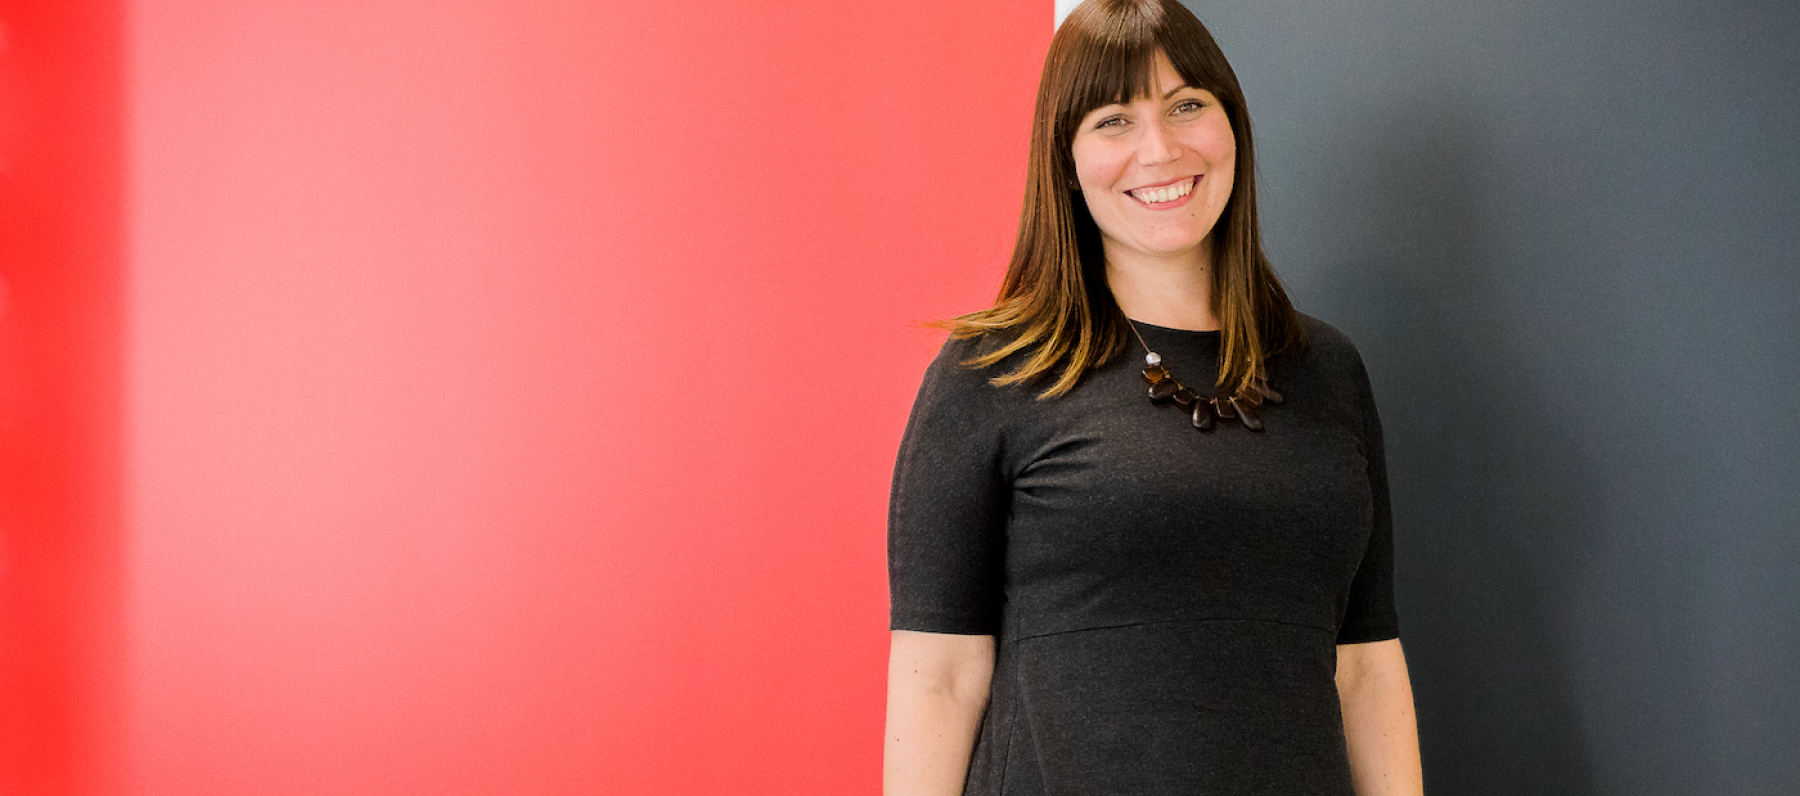 Introducing our new leaders: Sarah Patterson, GM Melbourne